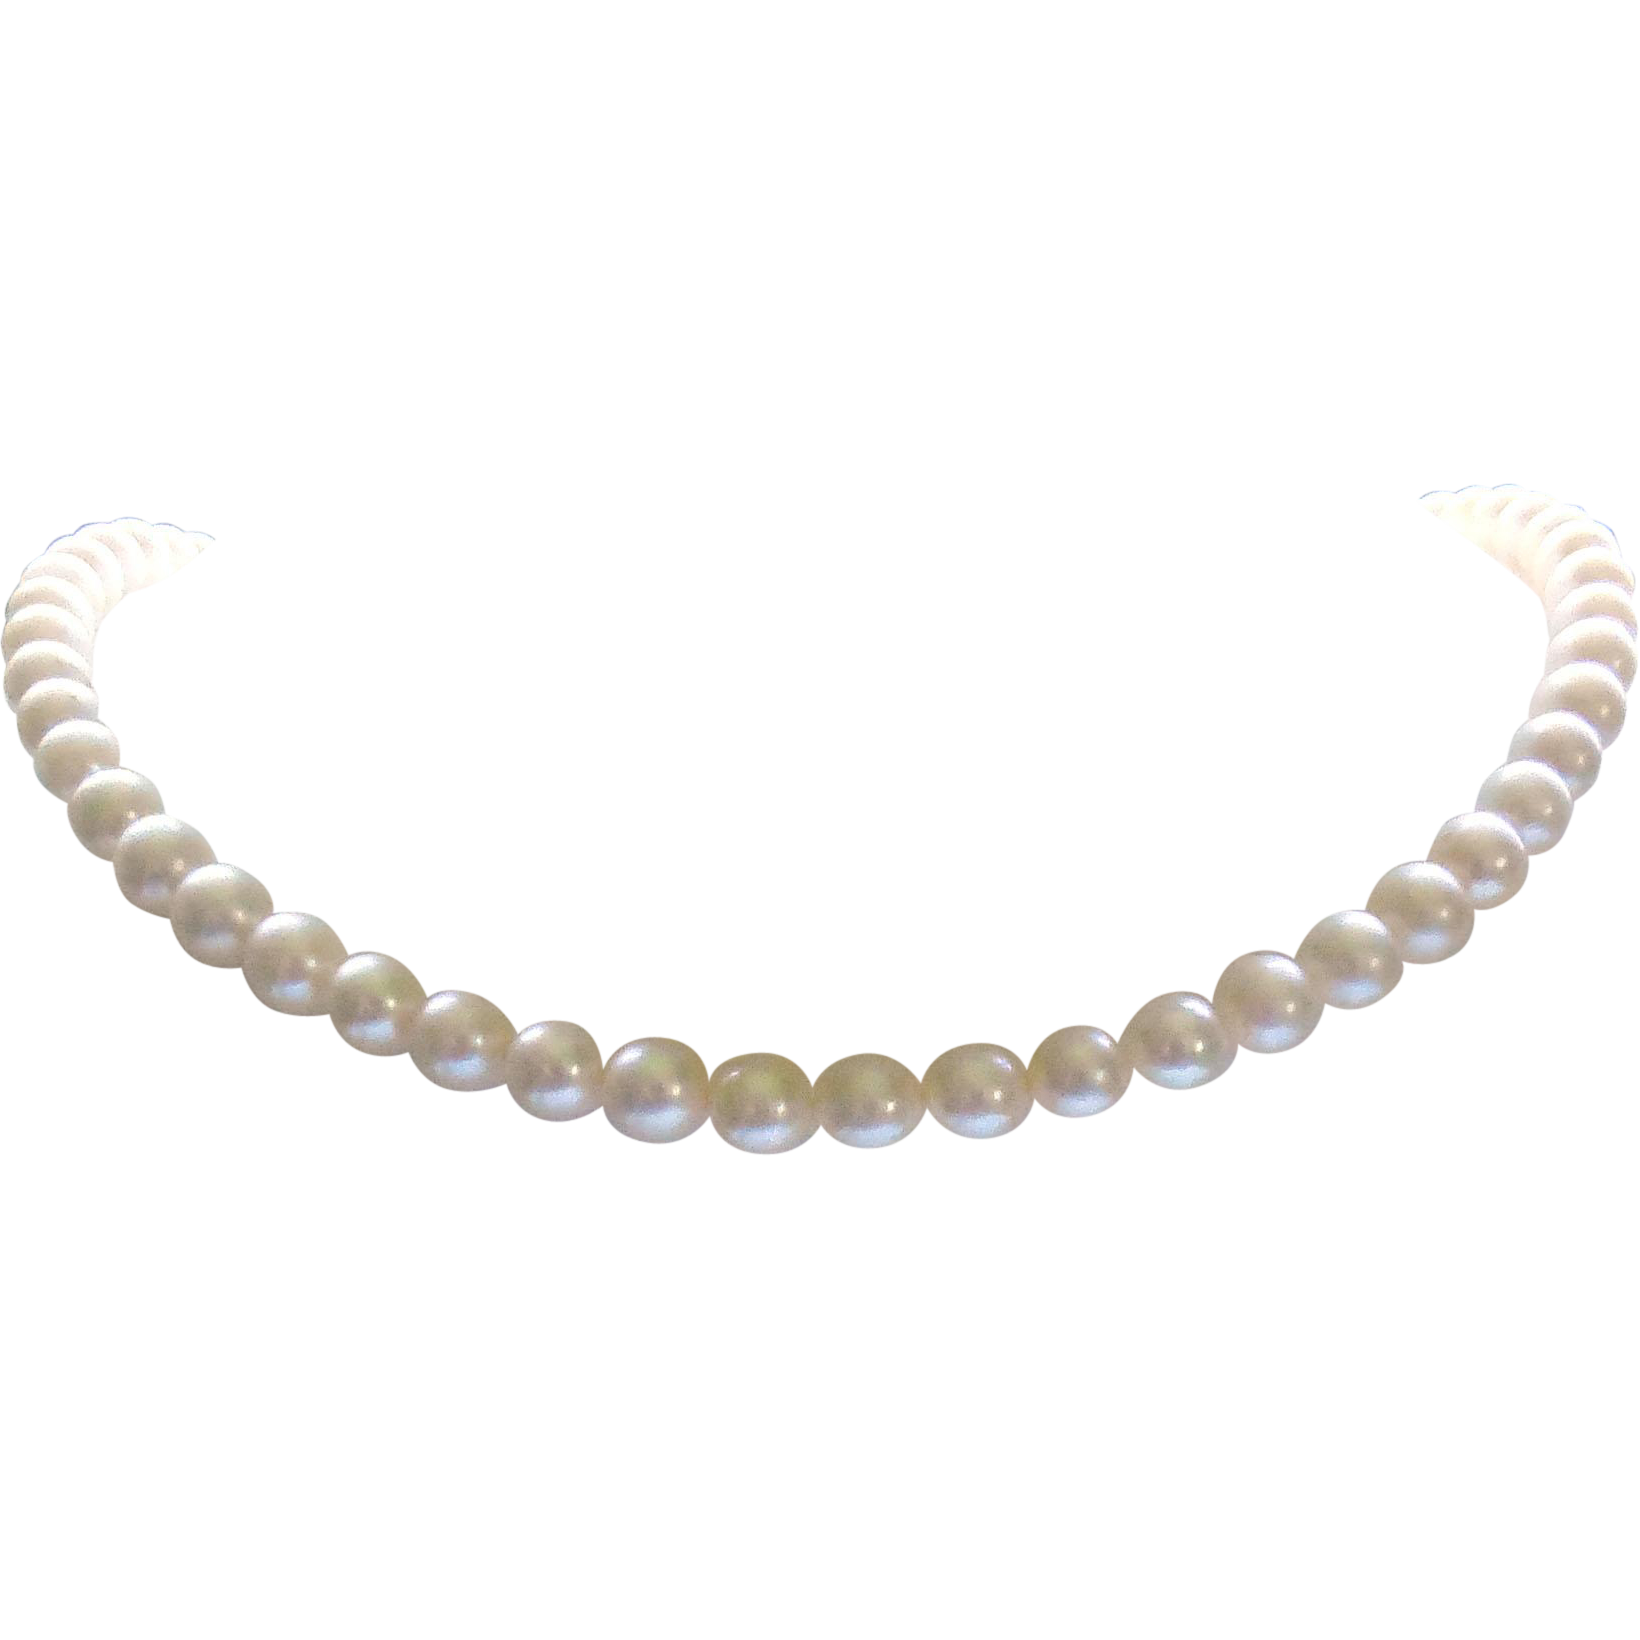 "Vintage Cultured Pearl Necklace With 14K Gold Clasp - 15"" Long / 6.5mm Pearls"